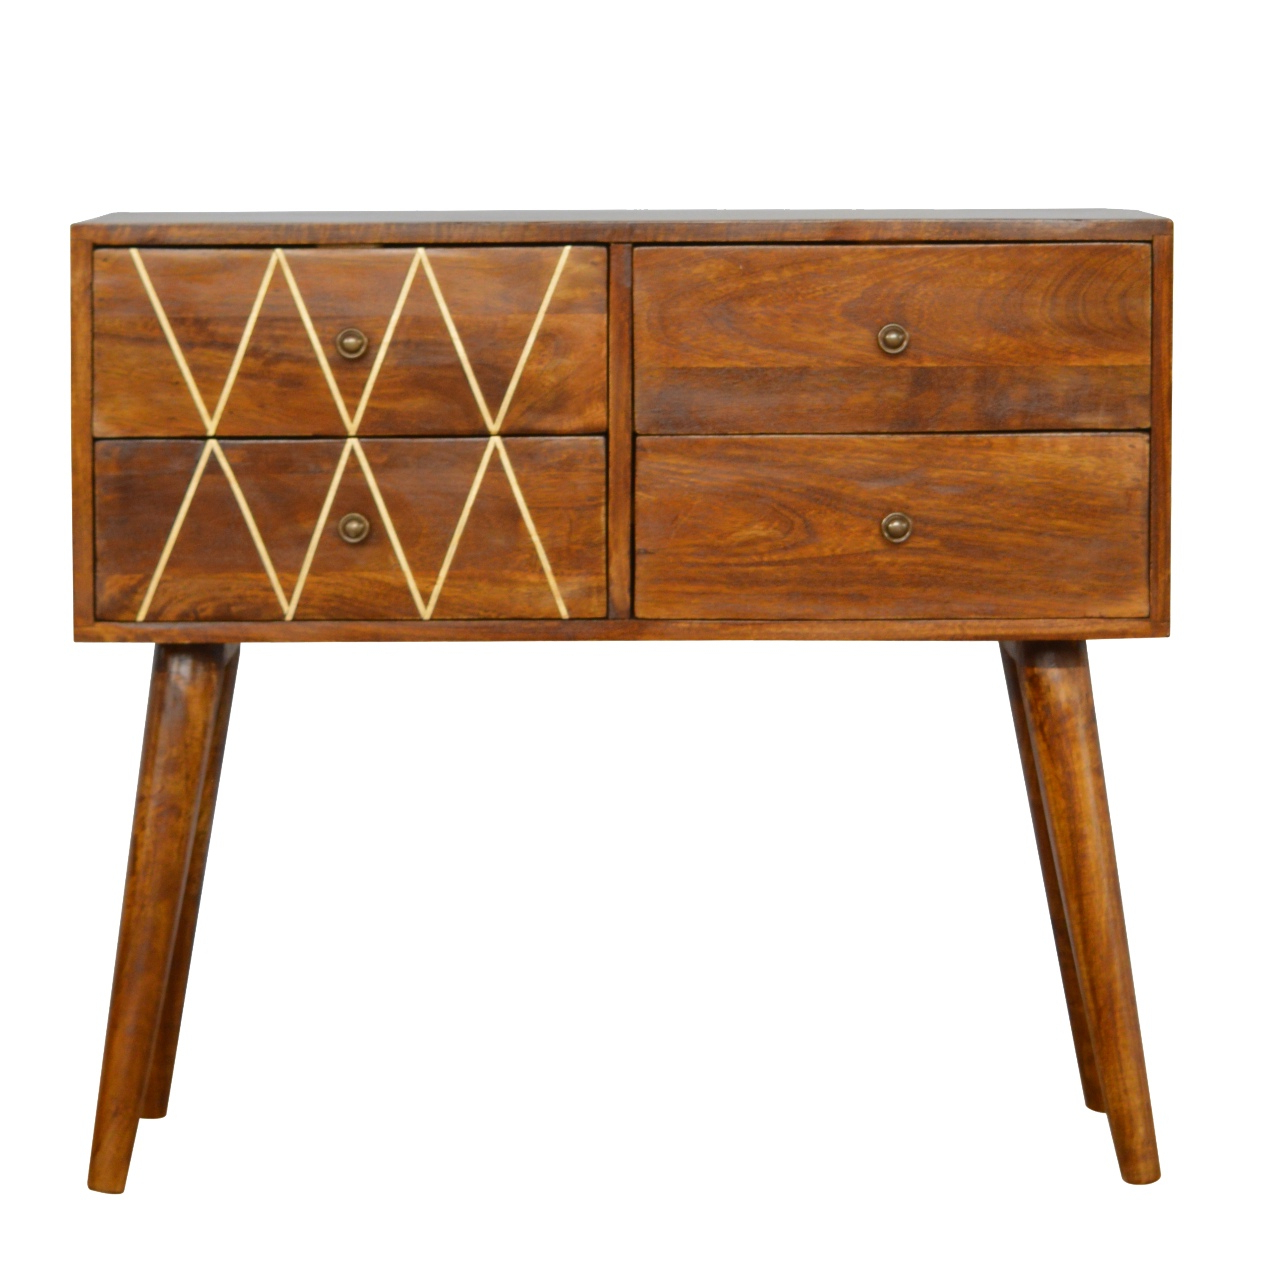 Orange Inlay Console Tables In Most Recently Released 4 Drawer Nordic Style Console Table With Brass Inlay – Oh Me Oh My (View 11 of 20)